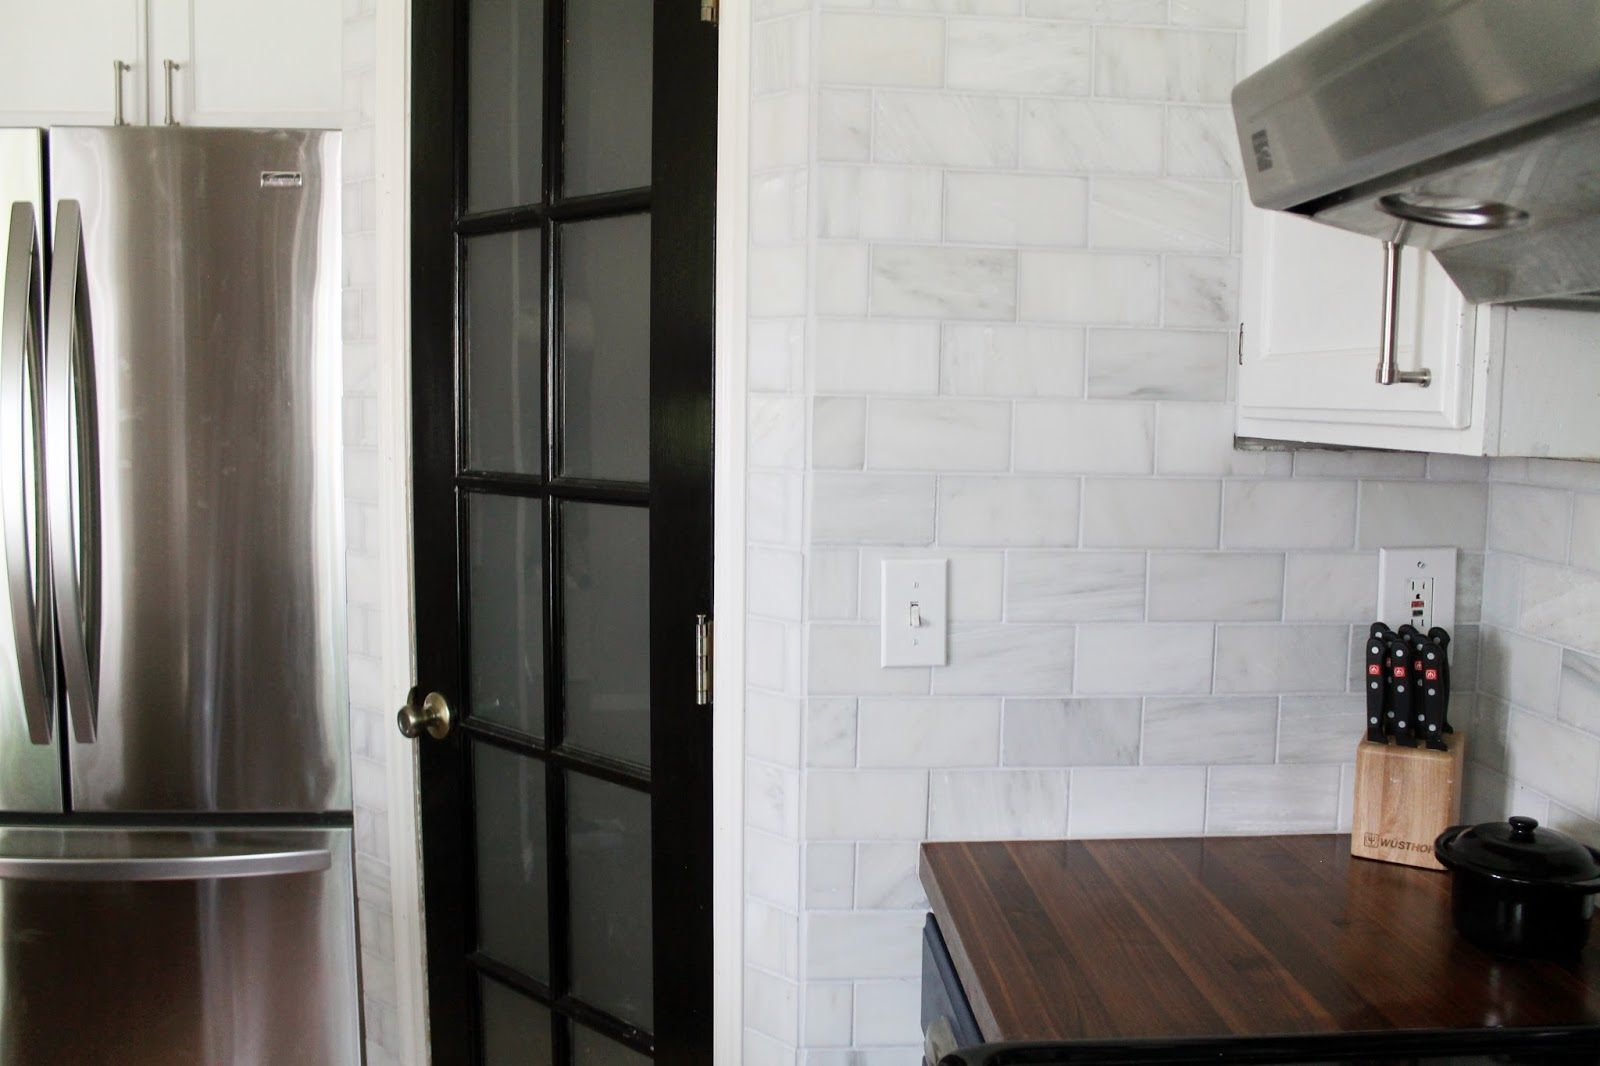 Dark Grey Subway Tile Backsplash That Hampton Carrara Marble Backsplash-Done-zo!! - Chris ...